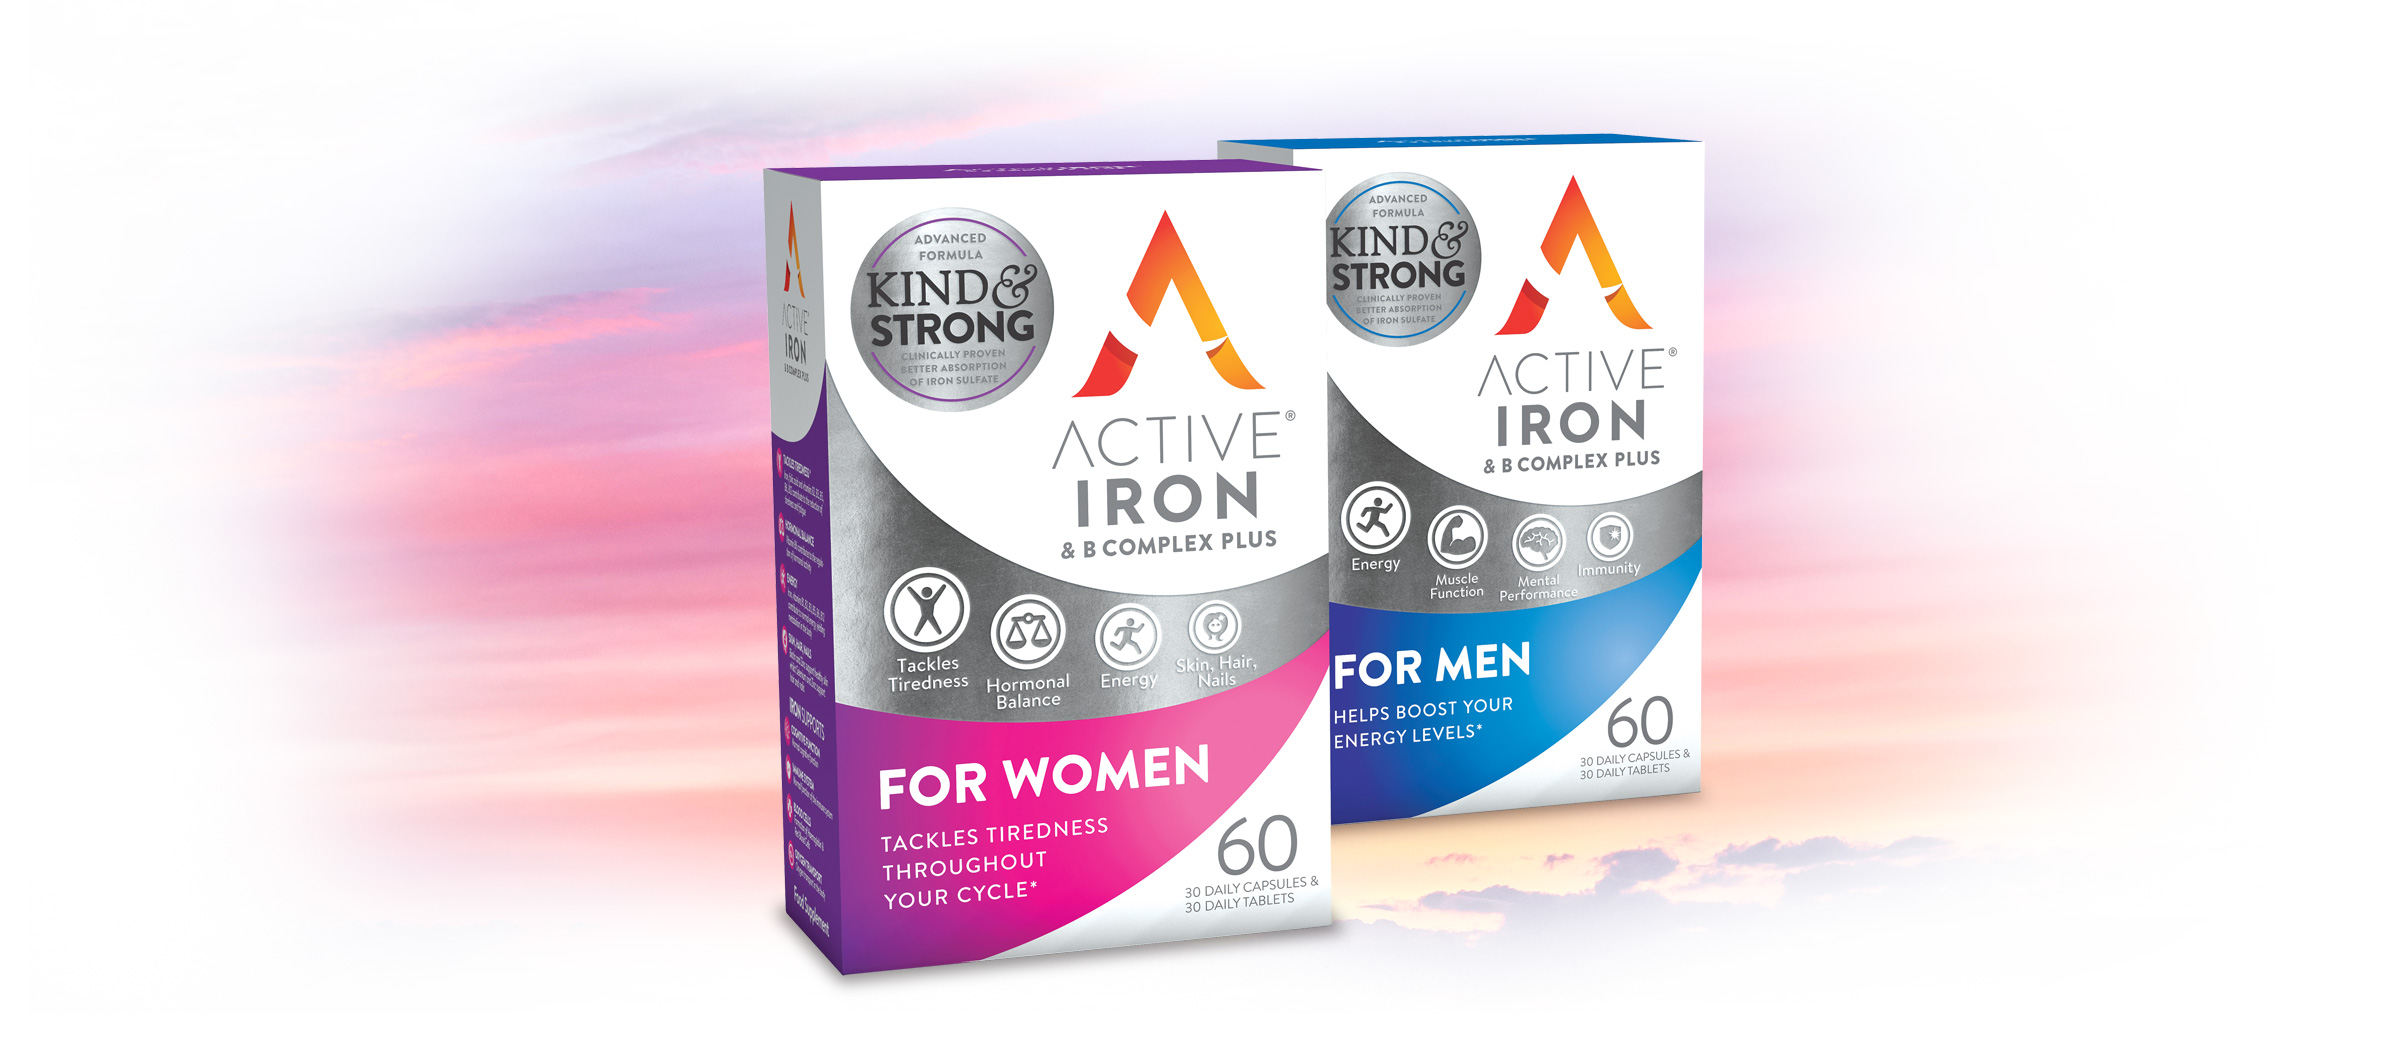 Activeiron & B Complex Plus